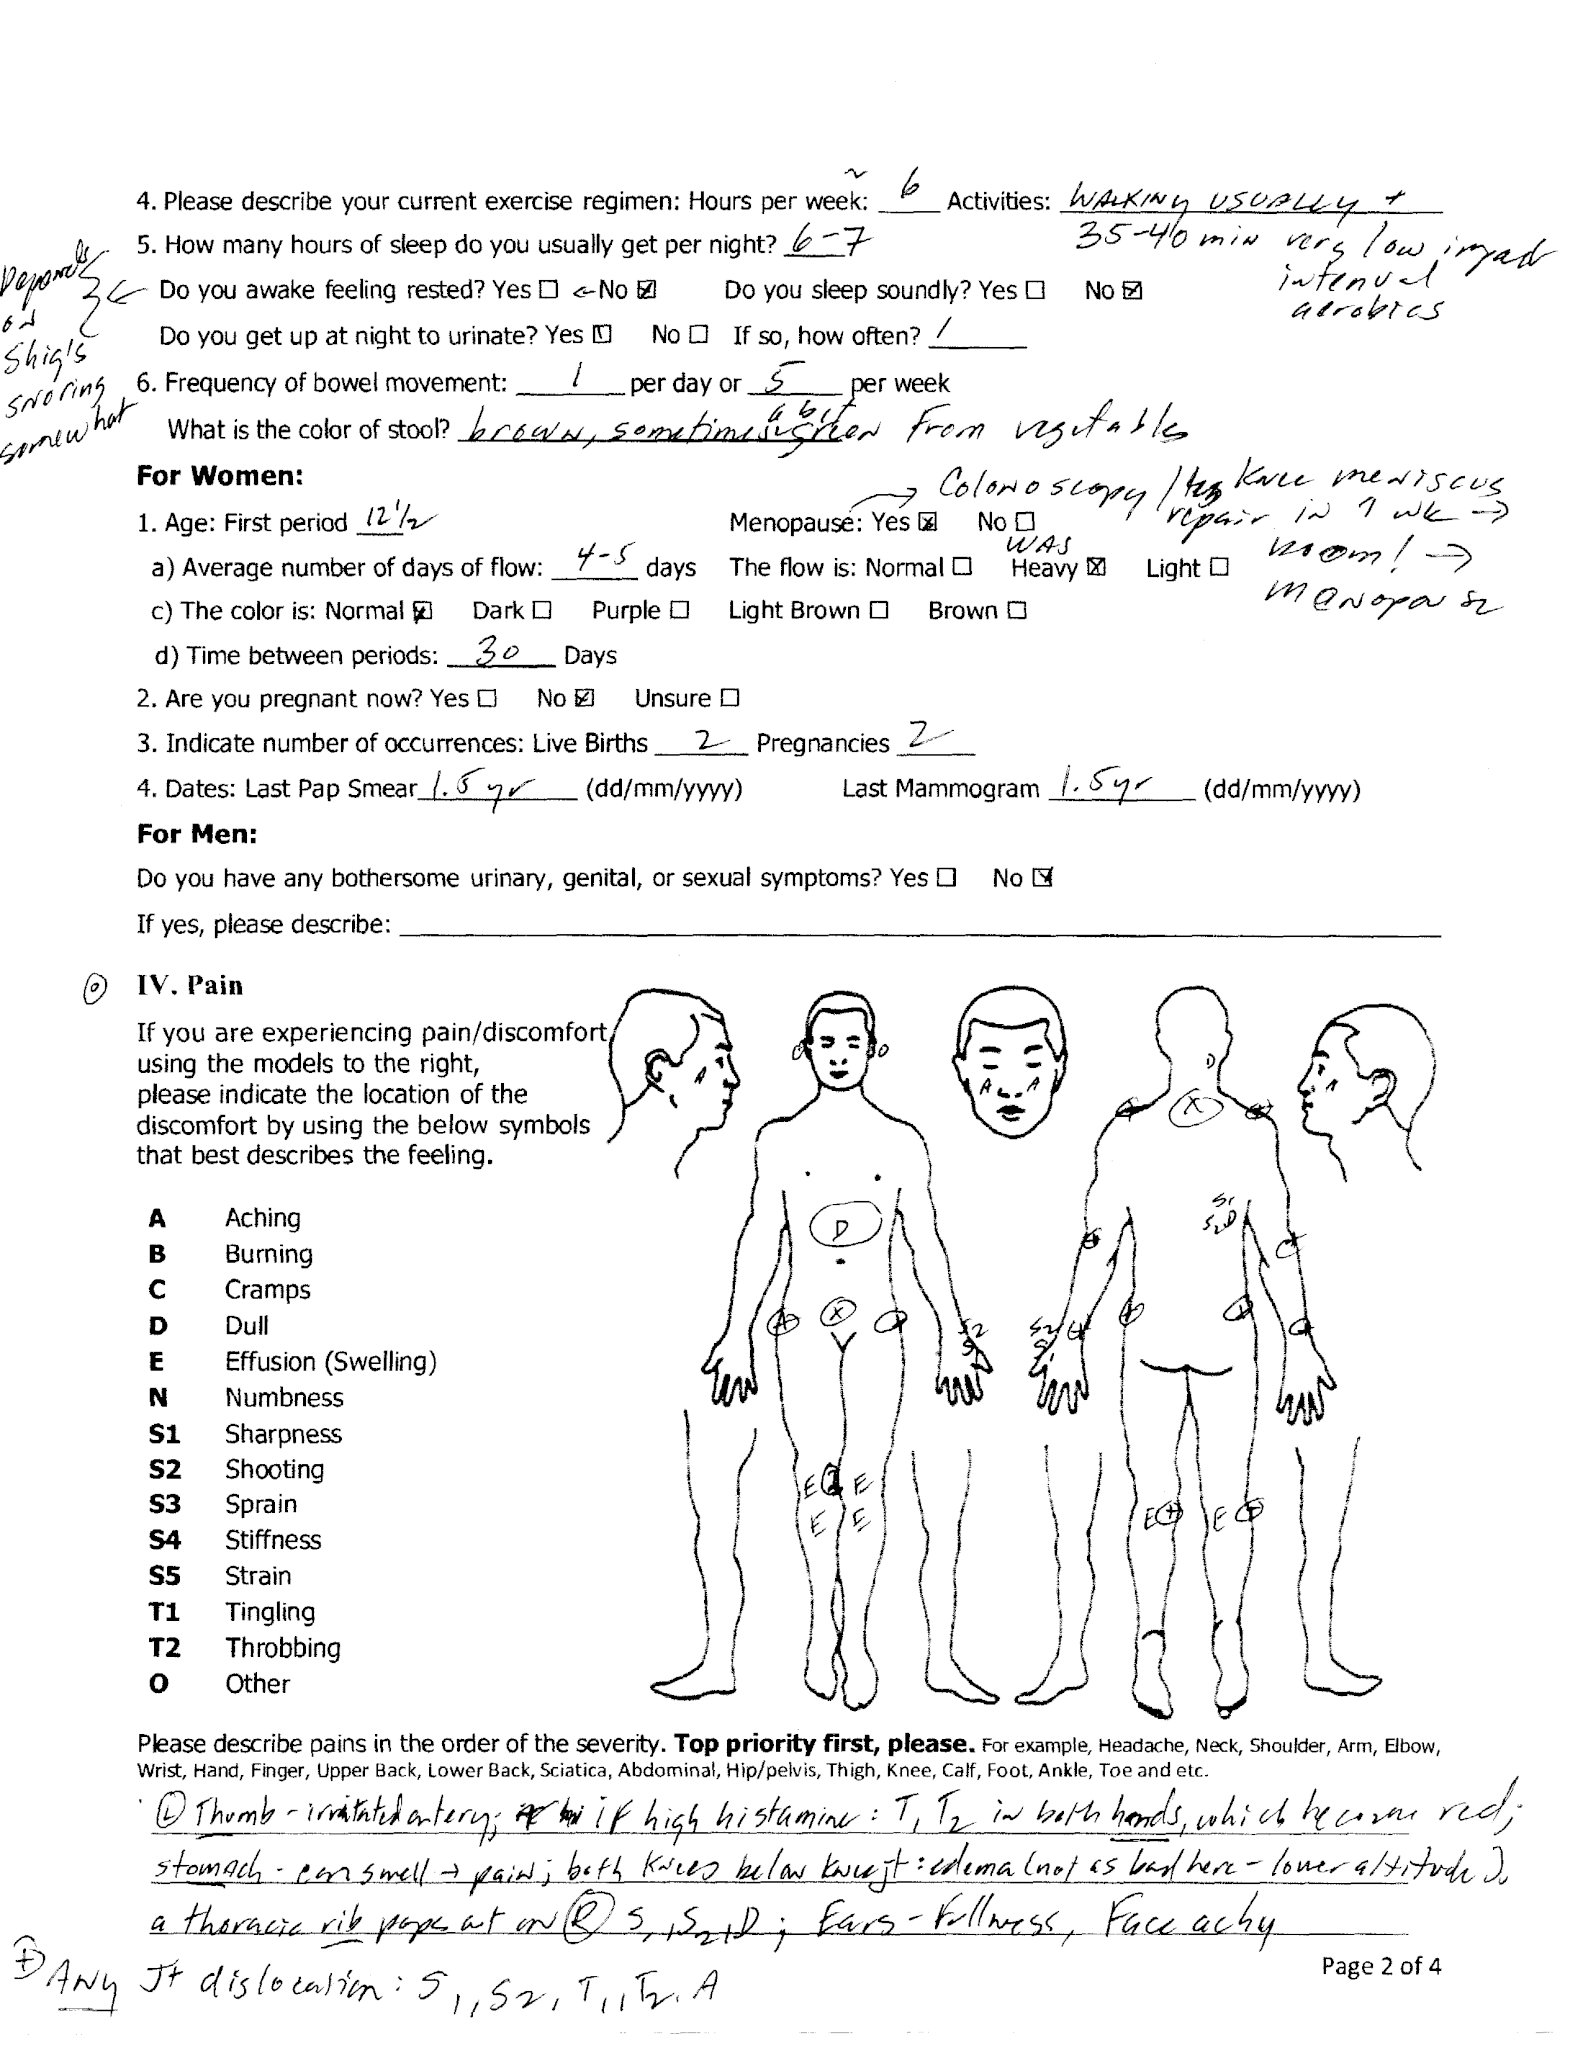 Furukawa Cynthia Registration Page 2 - KOSA Acupuncture for Ehlers-Danlos syndrome and Mast cell activation disorder